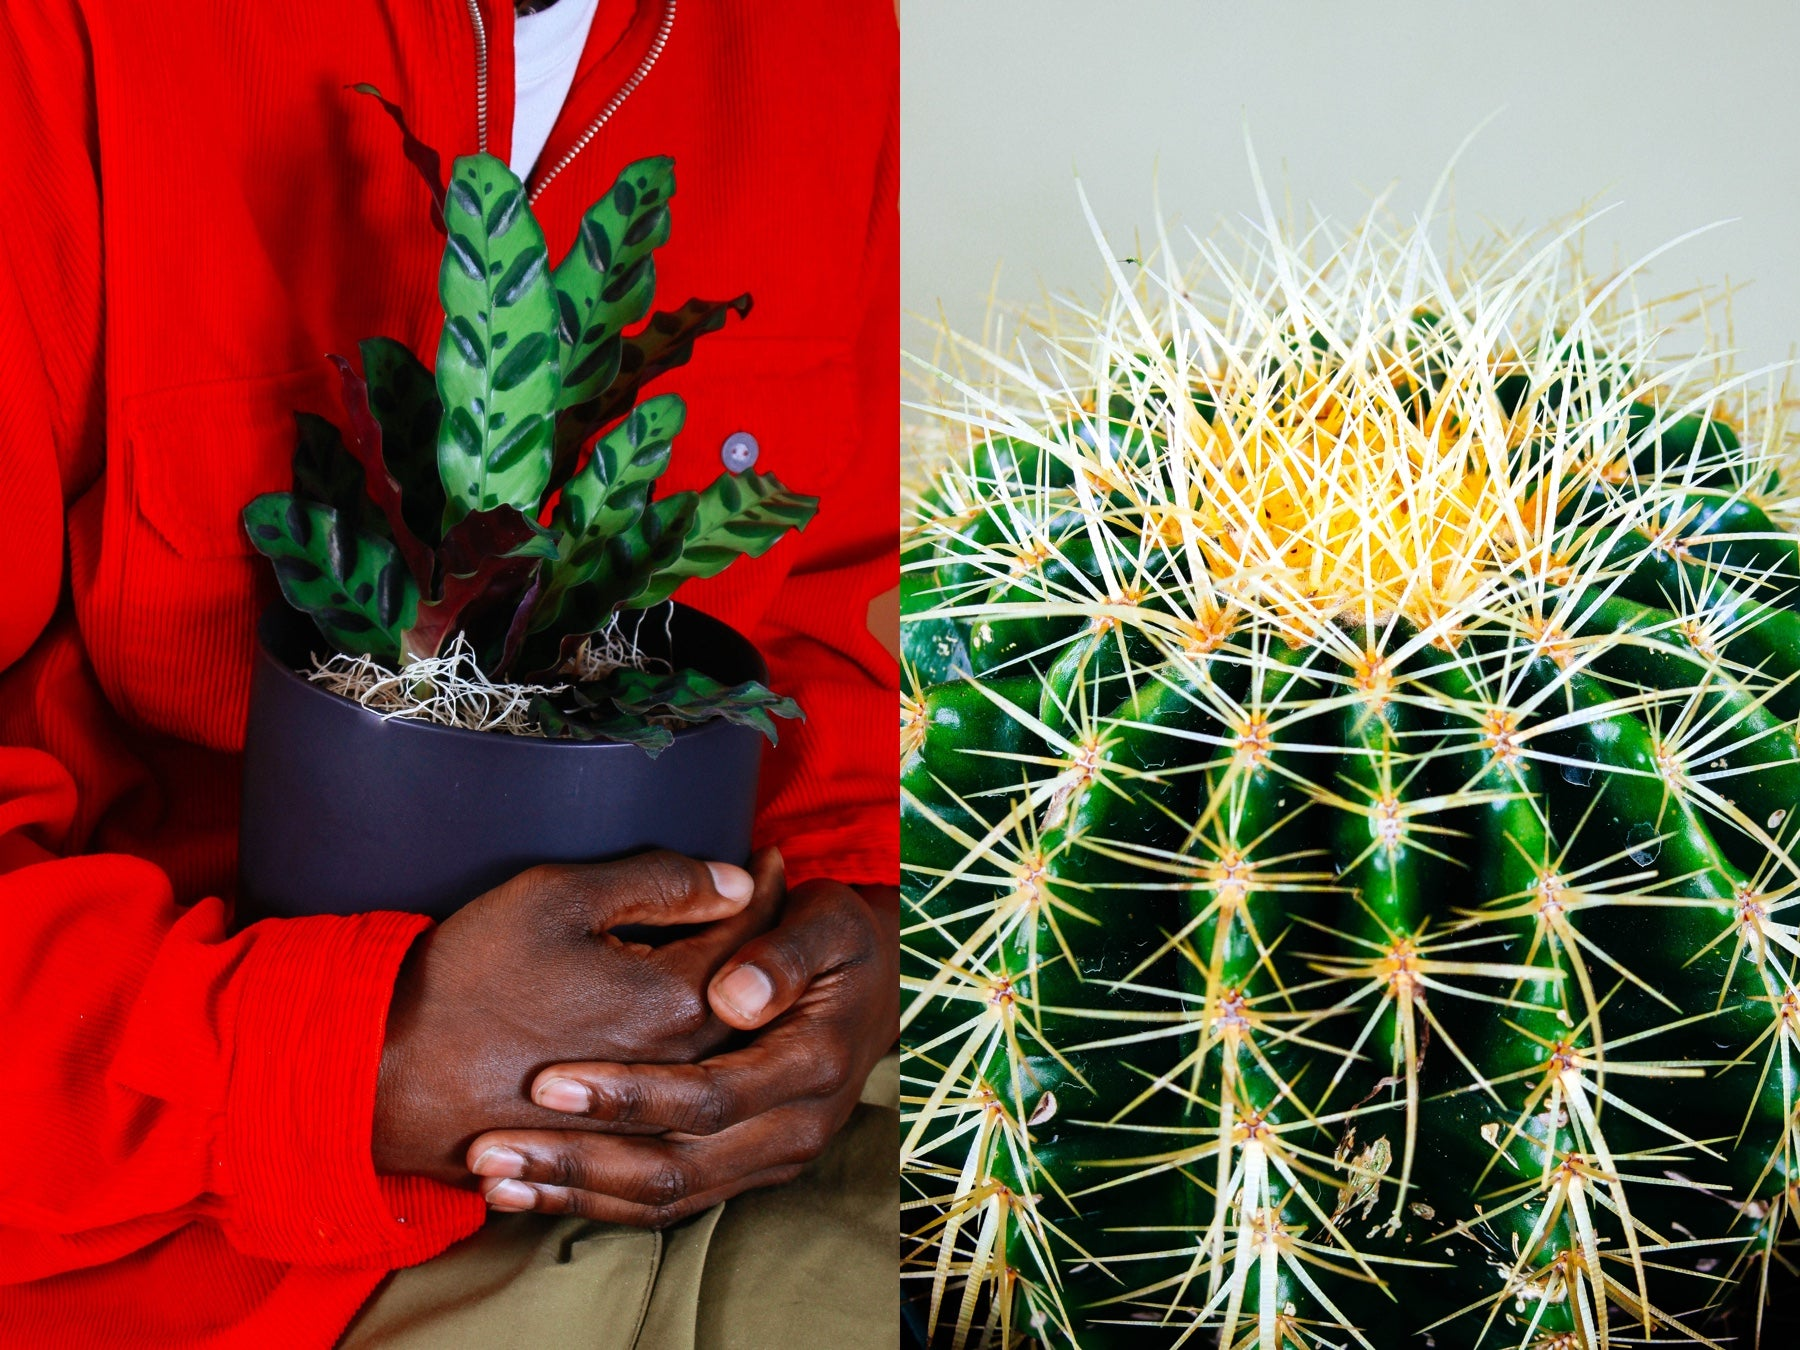 Side by side photos of plants: person holds a potted plant on the left, close up of cactus on the right